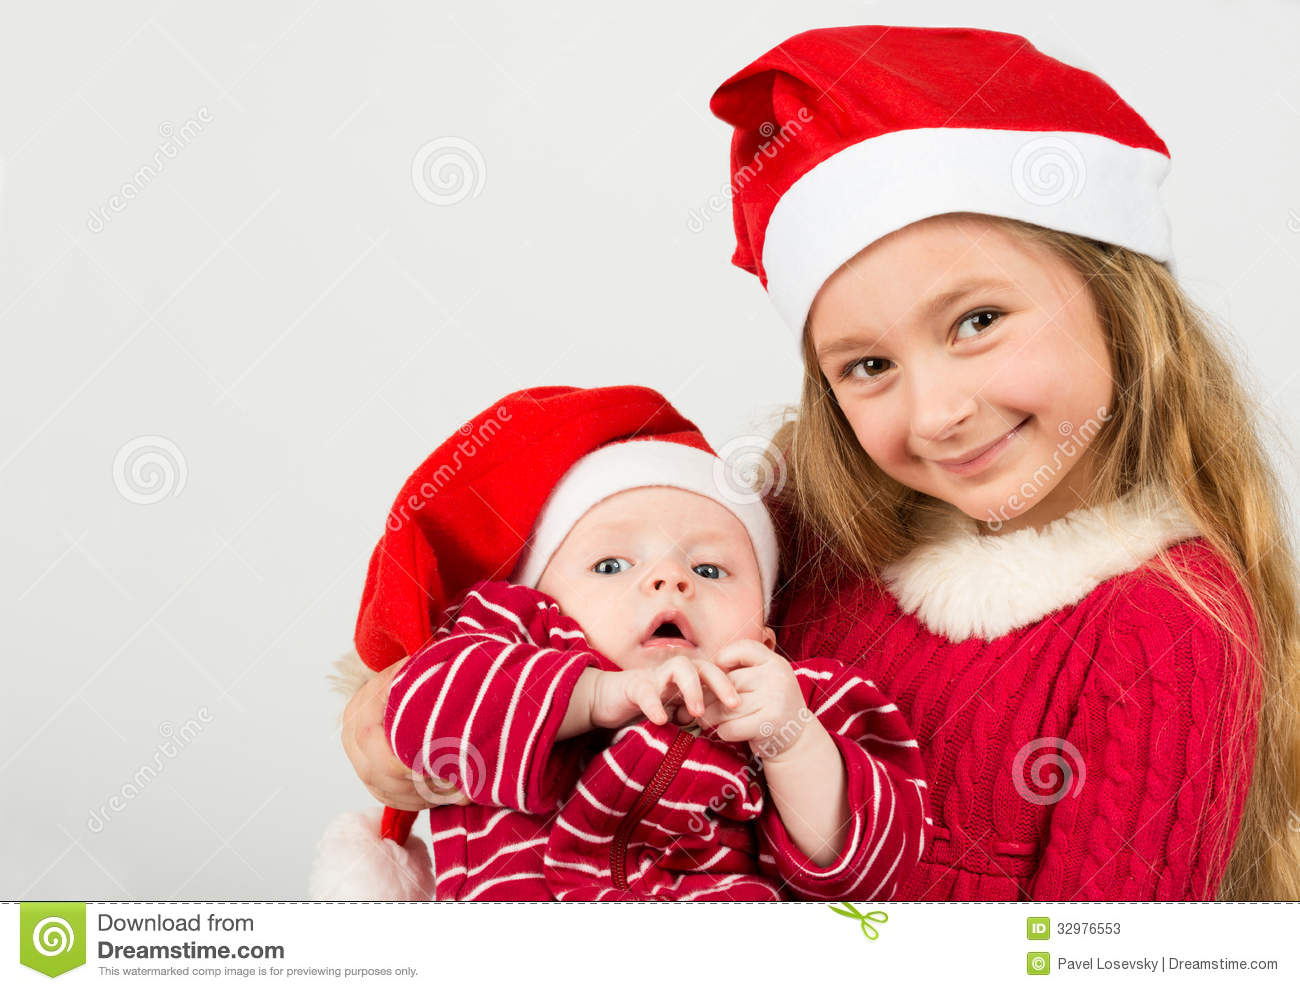 bb9425de36d5 Girl Stand In Santa Claus Hats And Holding Baby Boy Stock Image ...